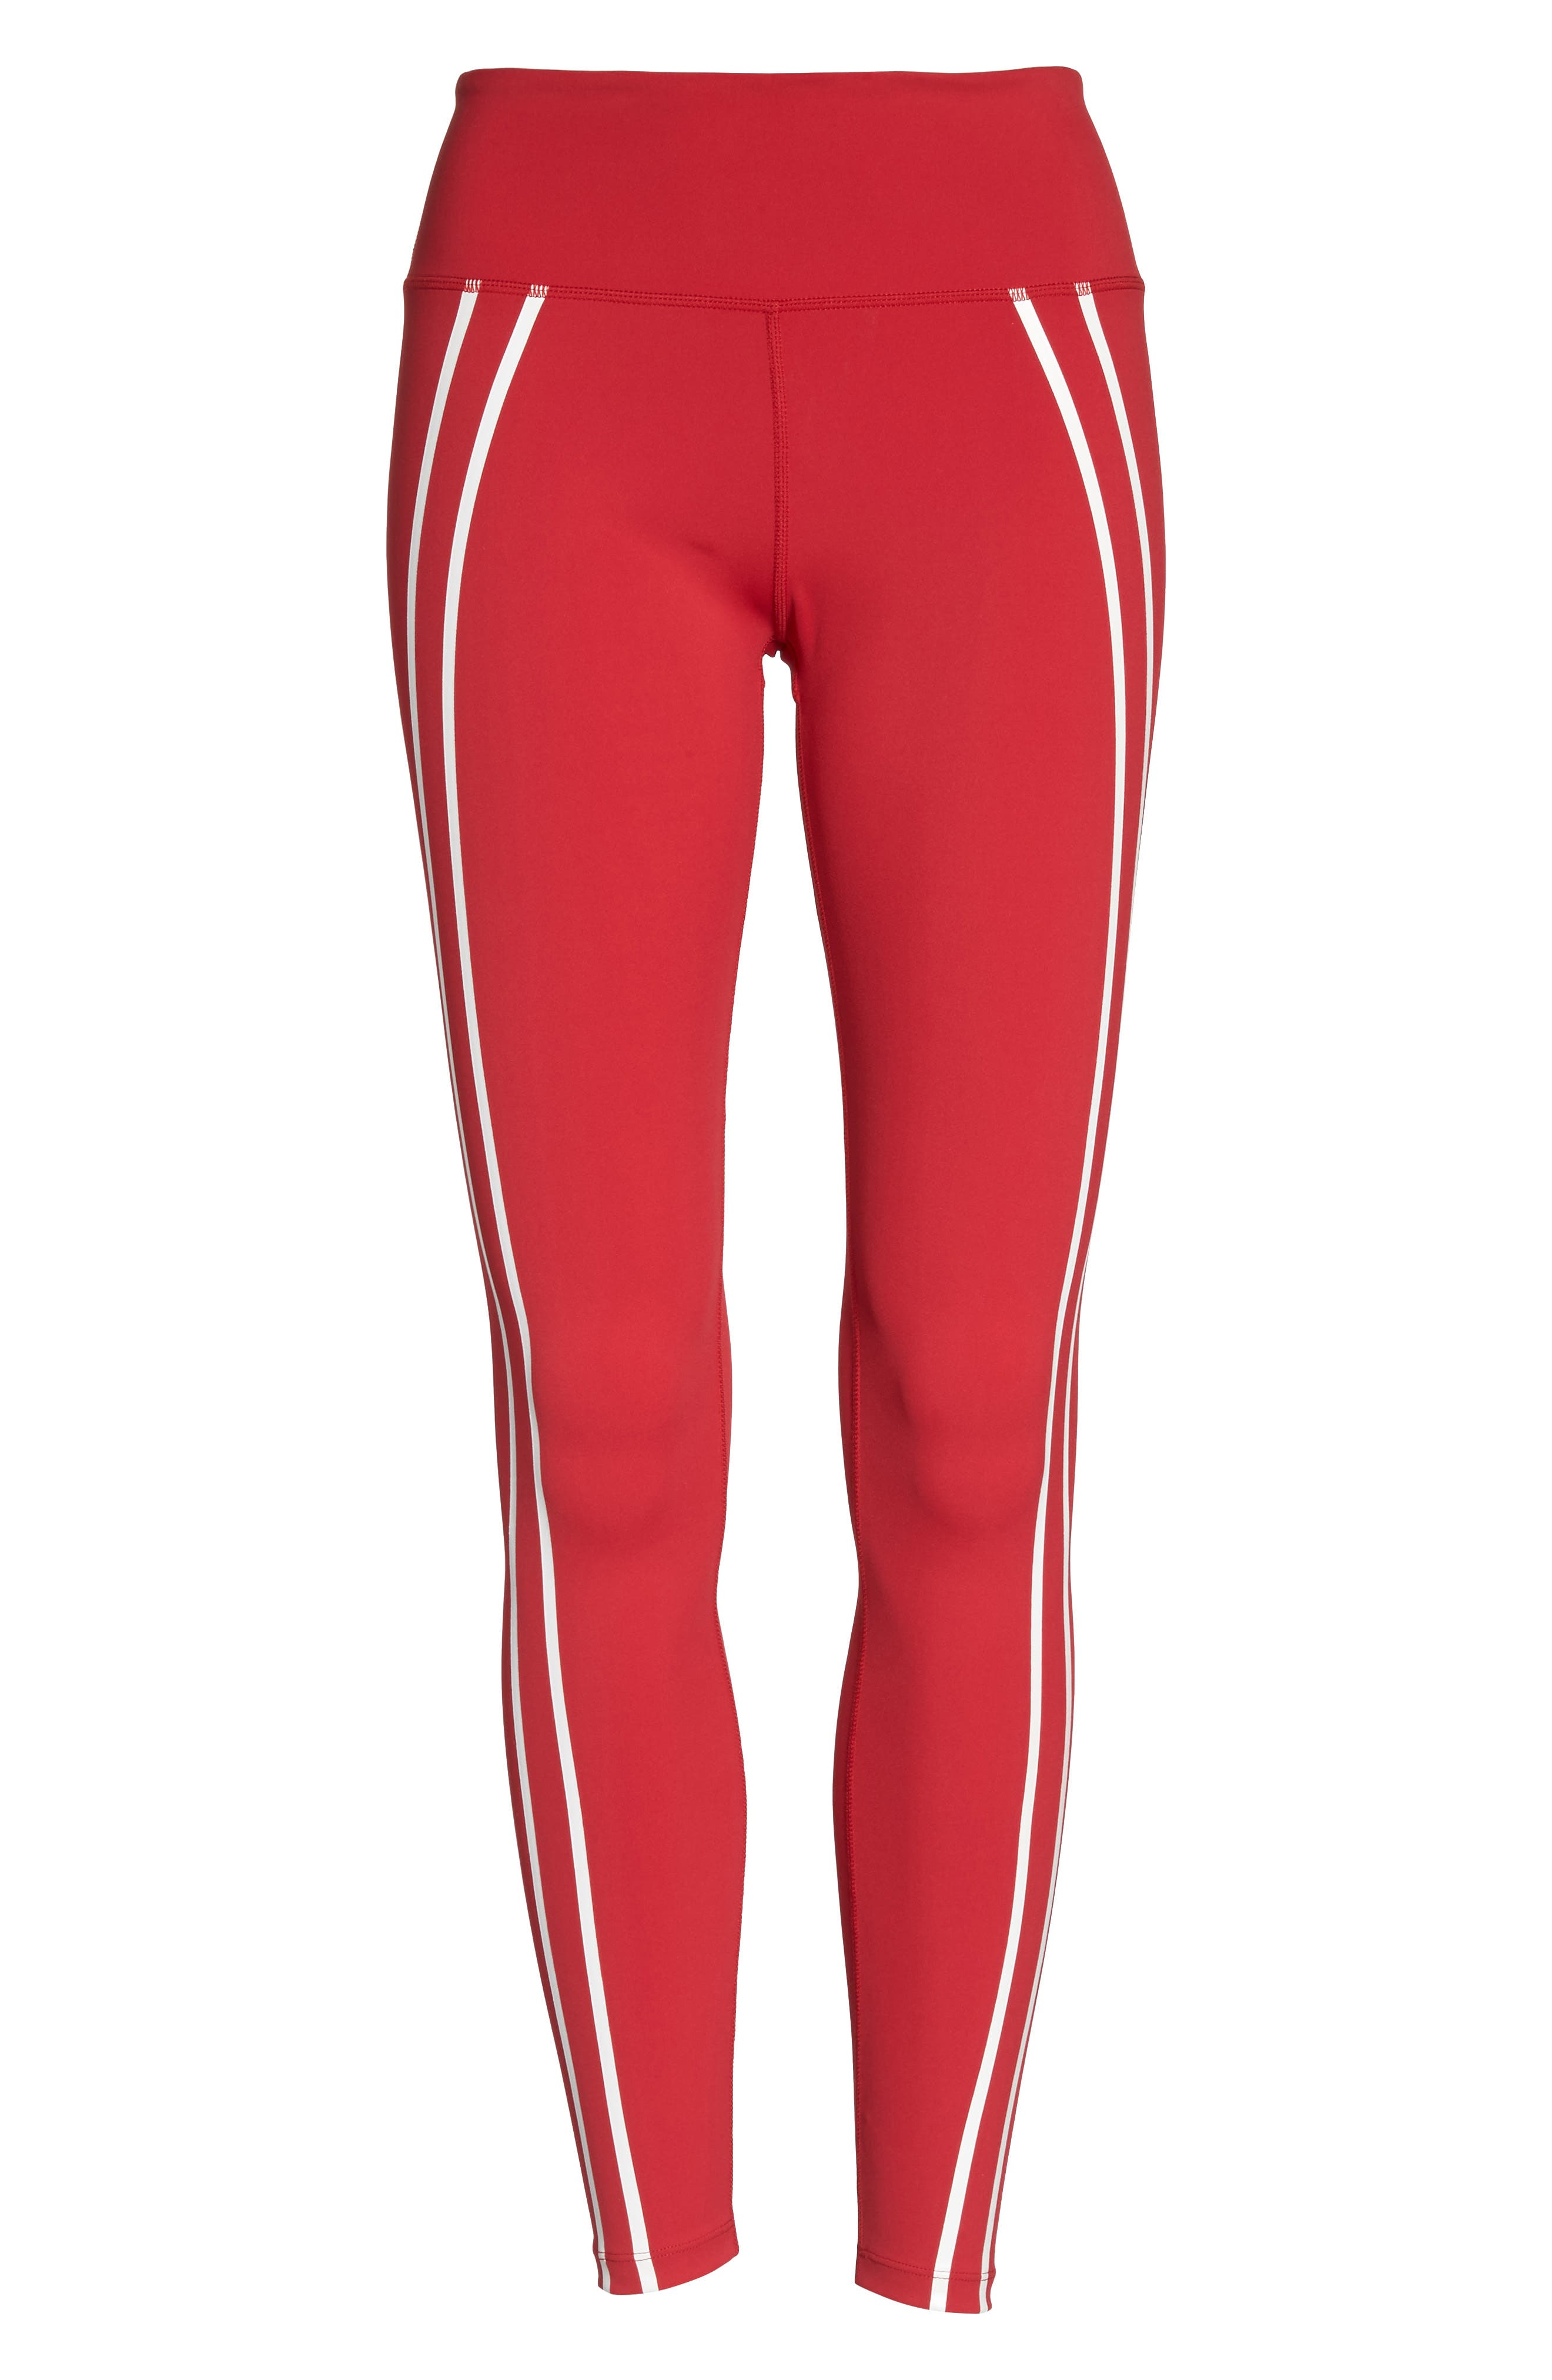 Distance Tights,                             Alternate thumbnail 7, color,                             Havana Red/ Off White